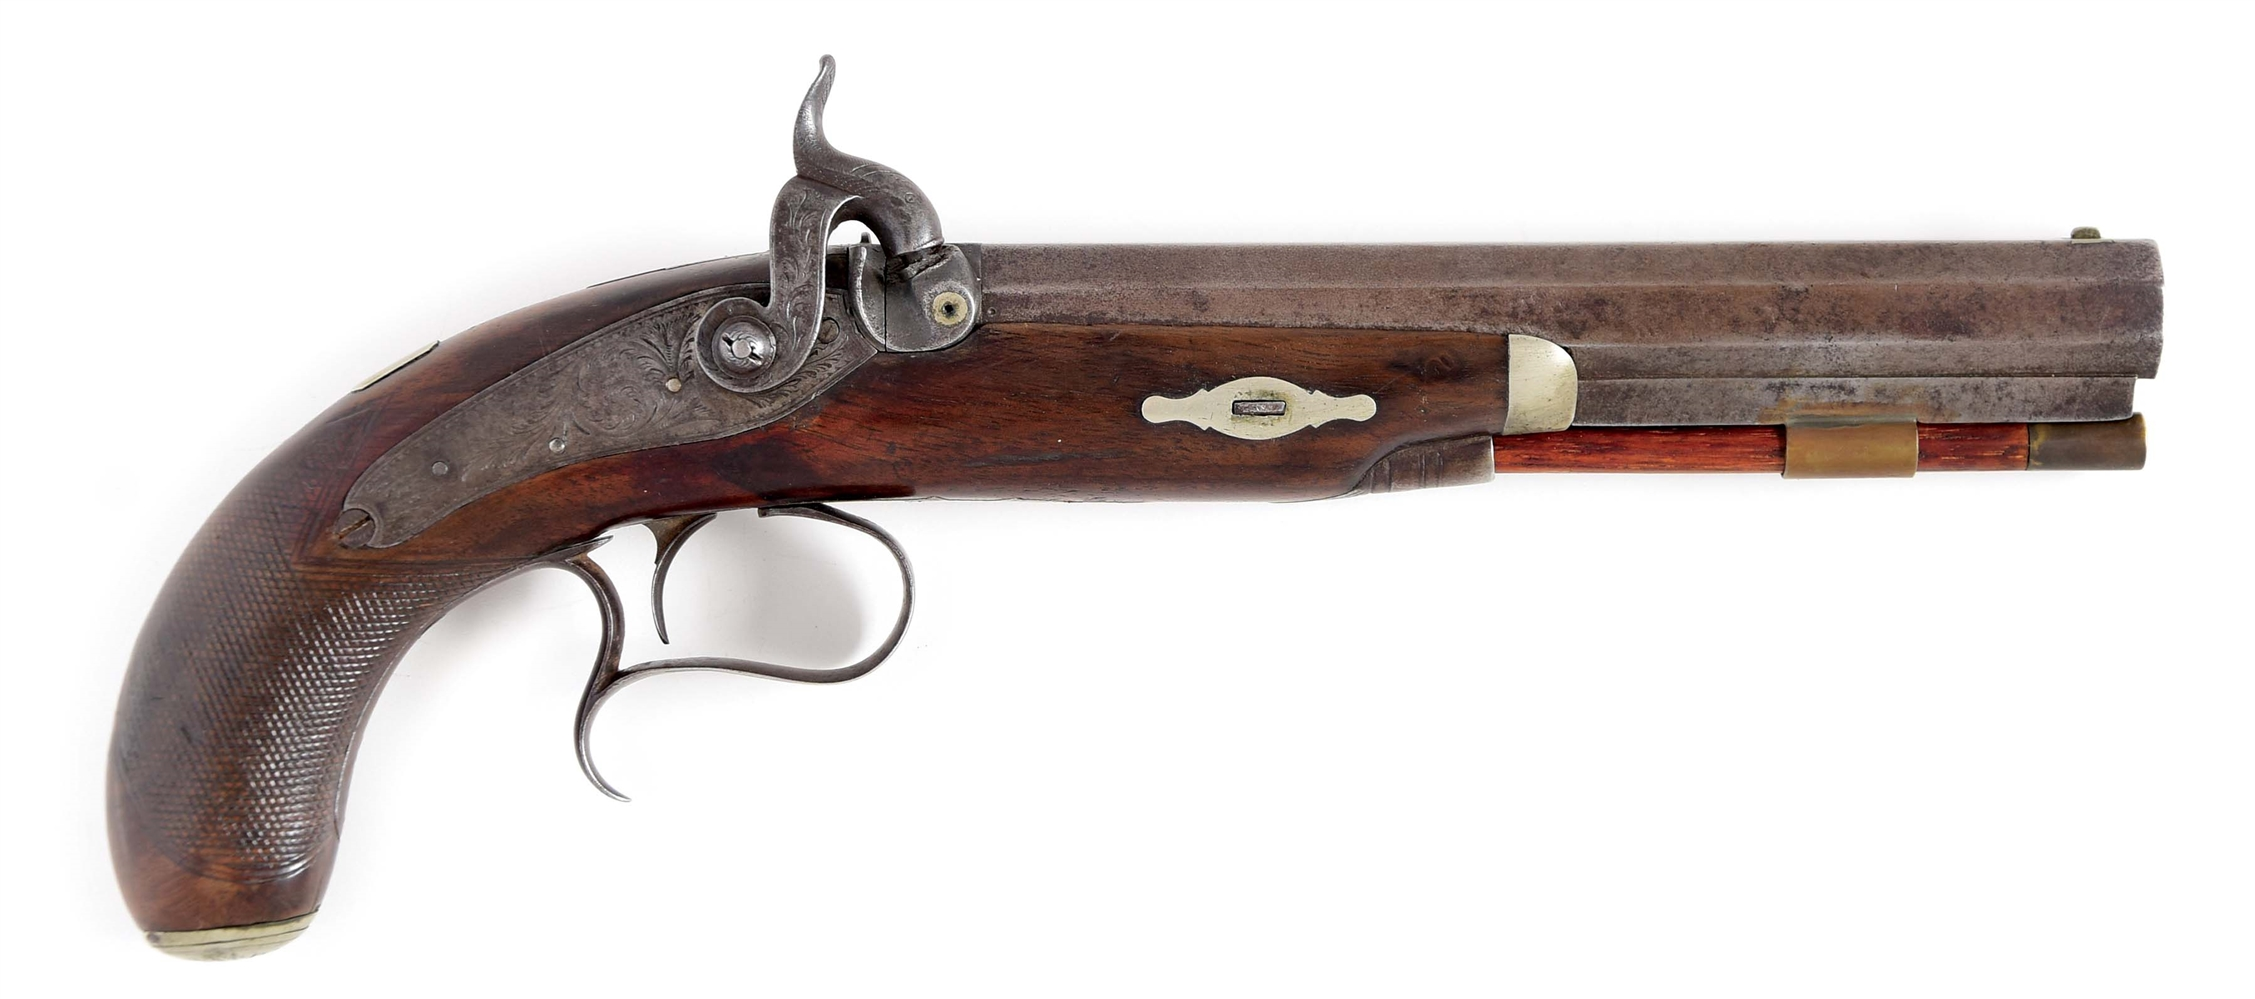 (A) LARGE DERINGER STYLE AMERICAN PERCUSSION PISTOL, SIGNED IN GOLD ON THE BARREL TRYON AMERICAN CO. 1832-1838.